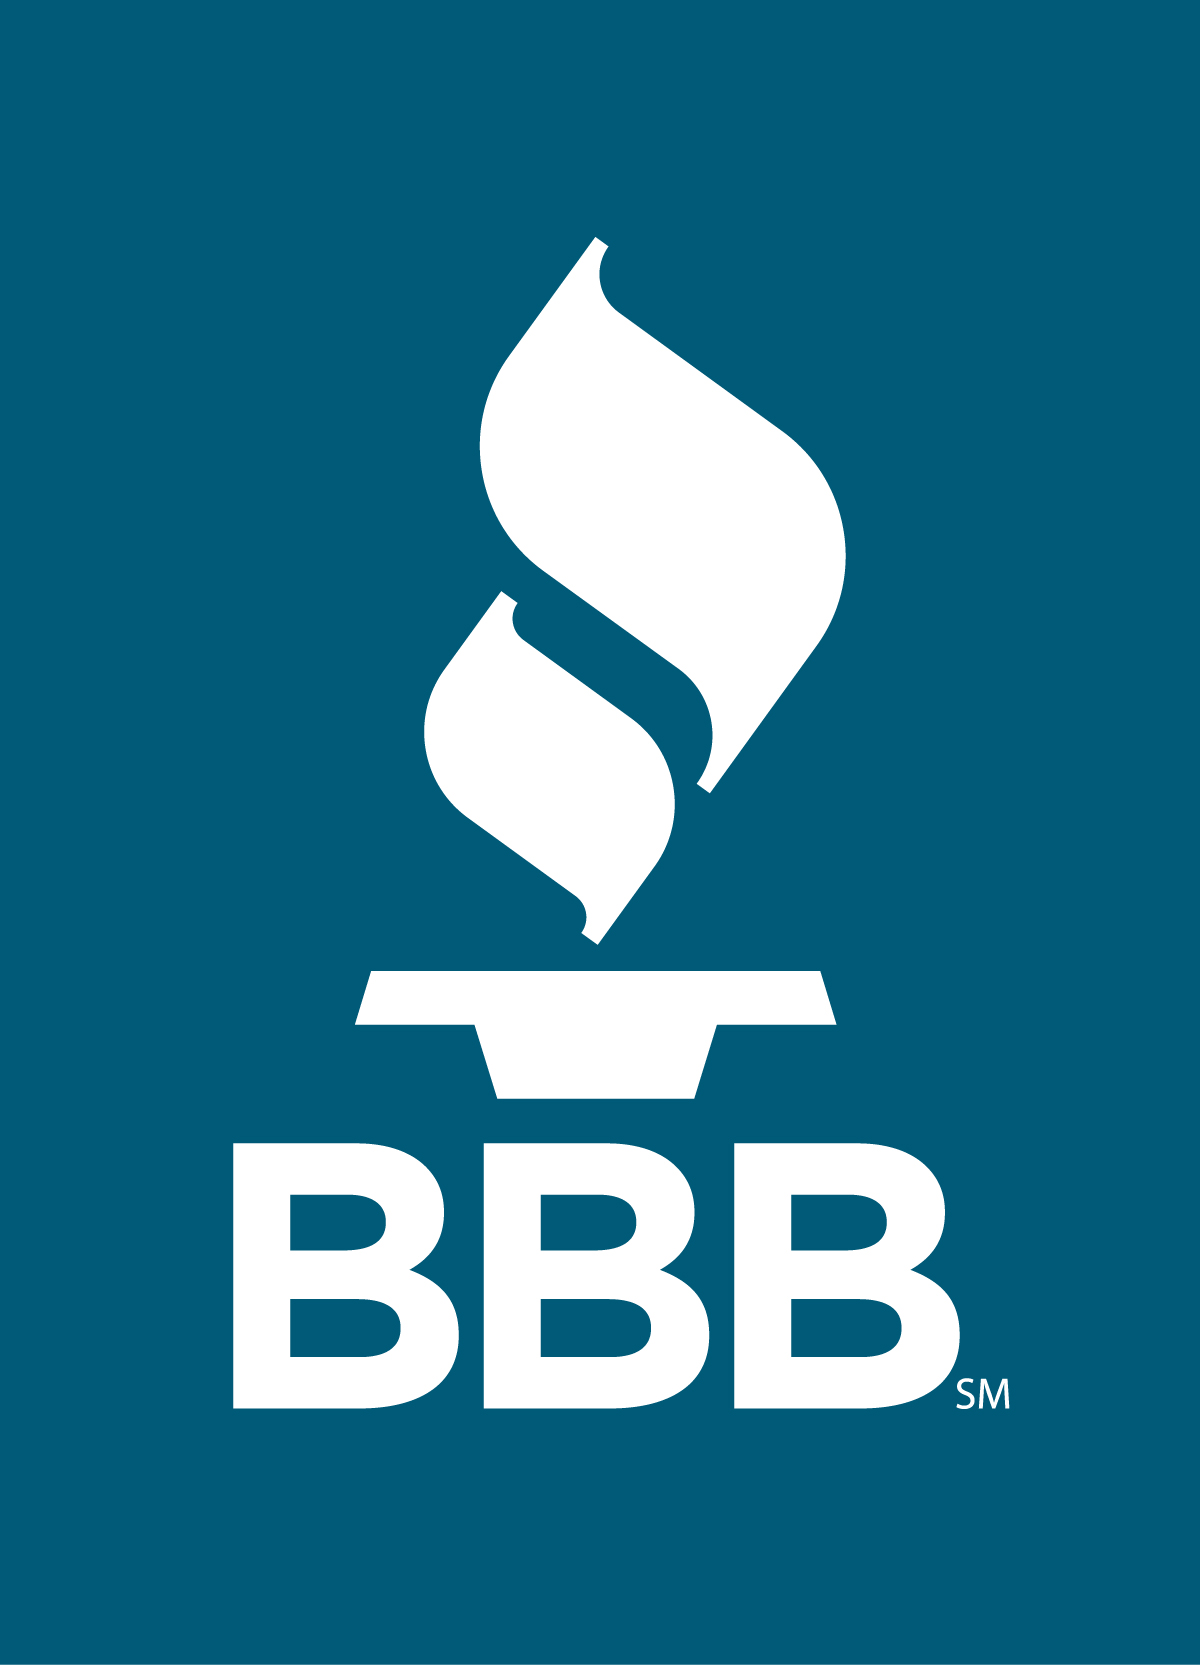 EventsWholesale is certified by the Better Business Bureau